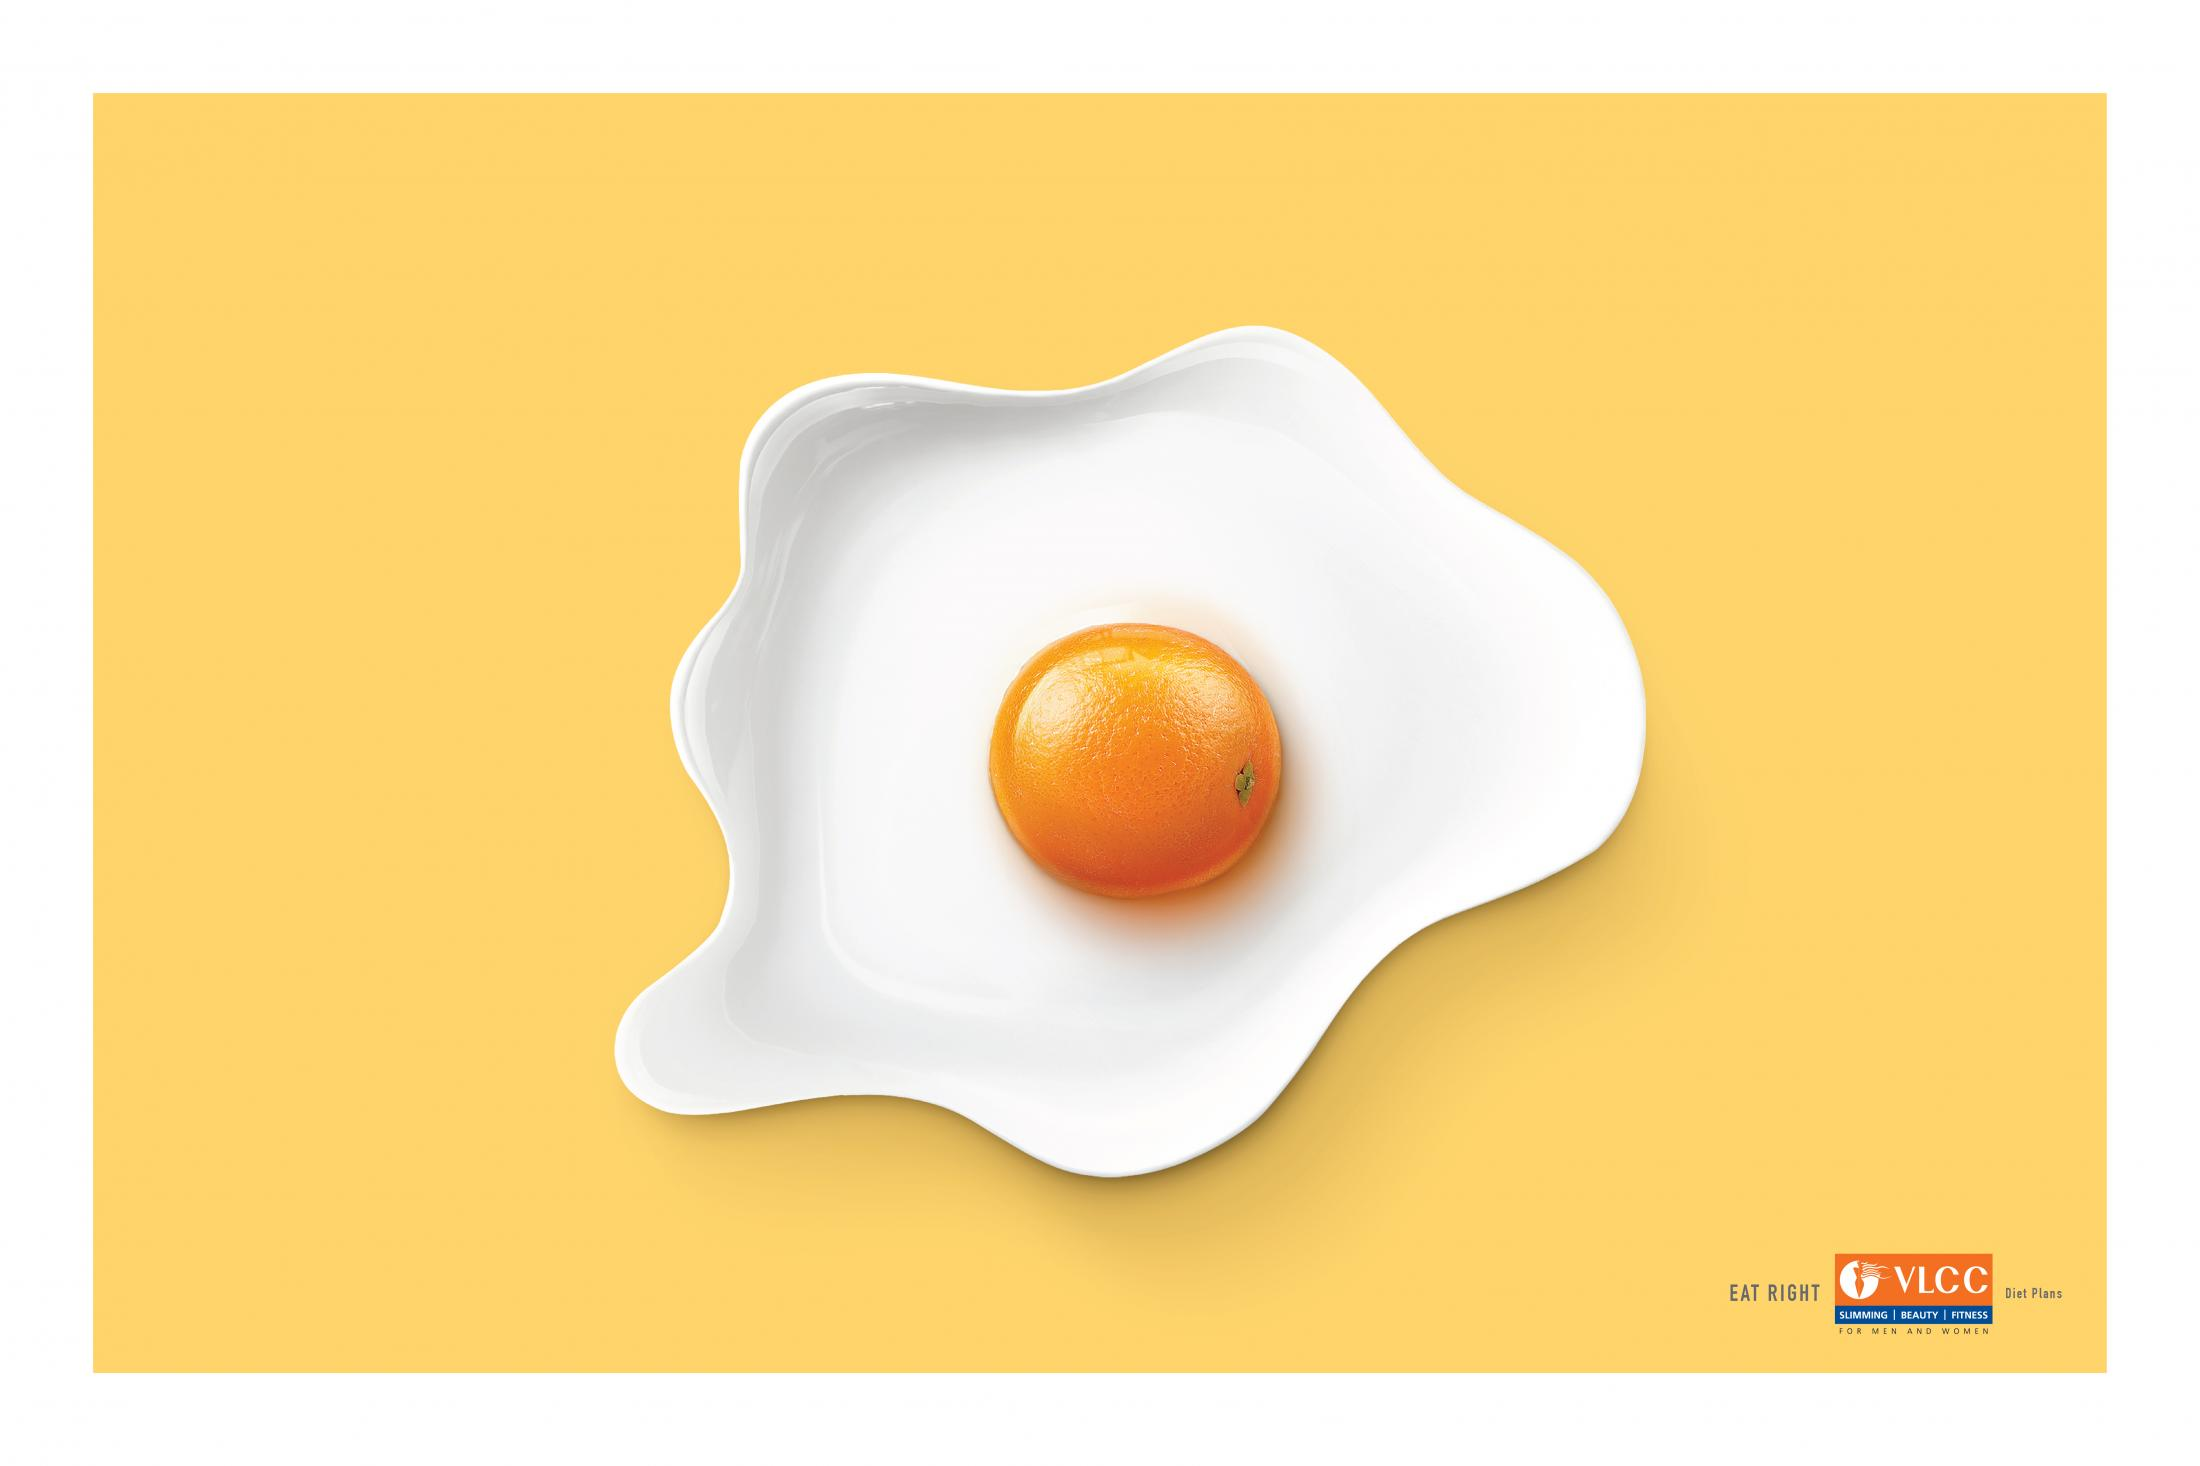 VLCC Print Ad - Eat Right, 3